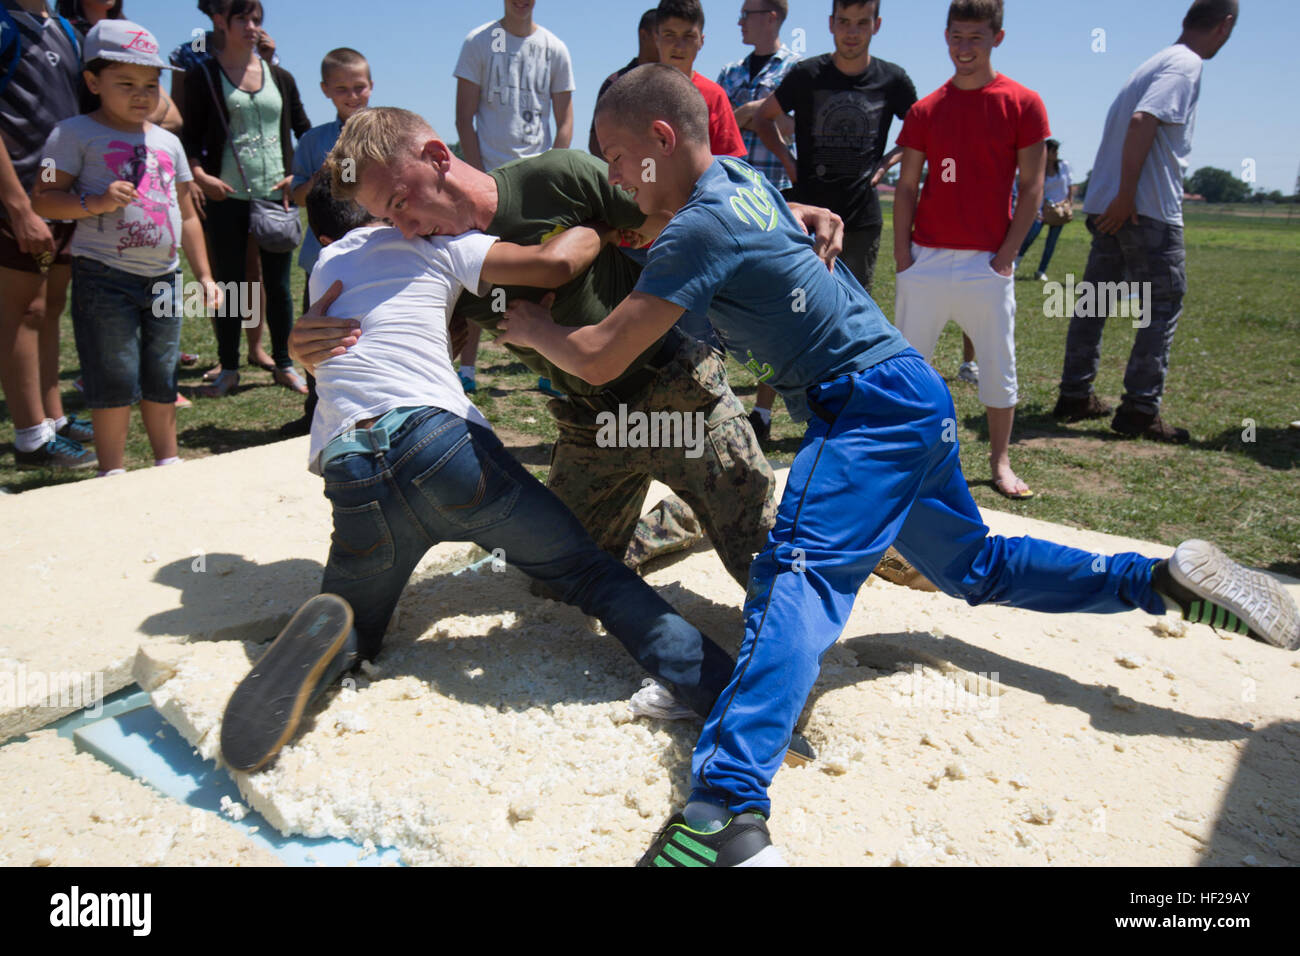 ... from 3rd Battalion, 8th Marine Regiment, plays with two Romanian boys  while demonstrating MCMAP techniques during the last children's event ...